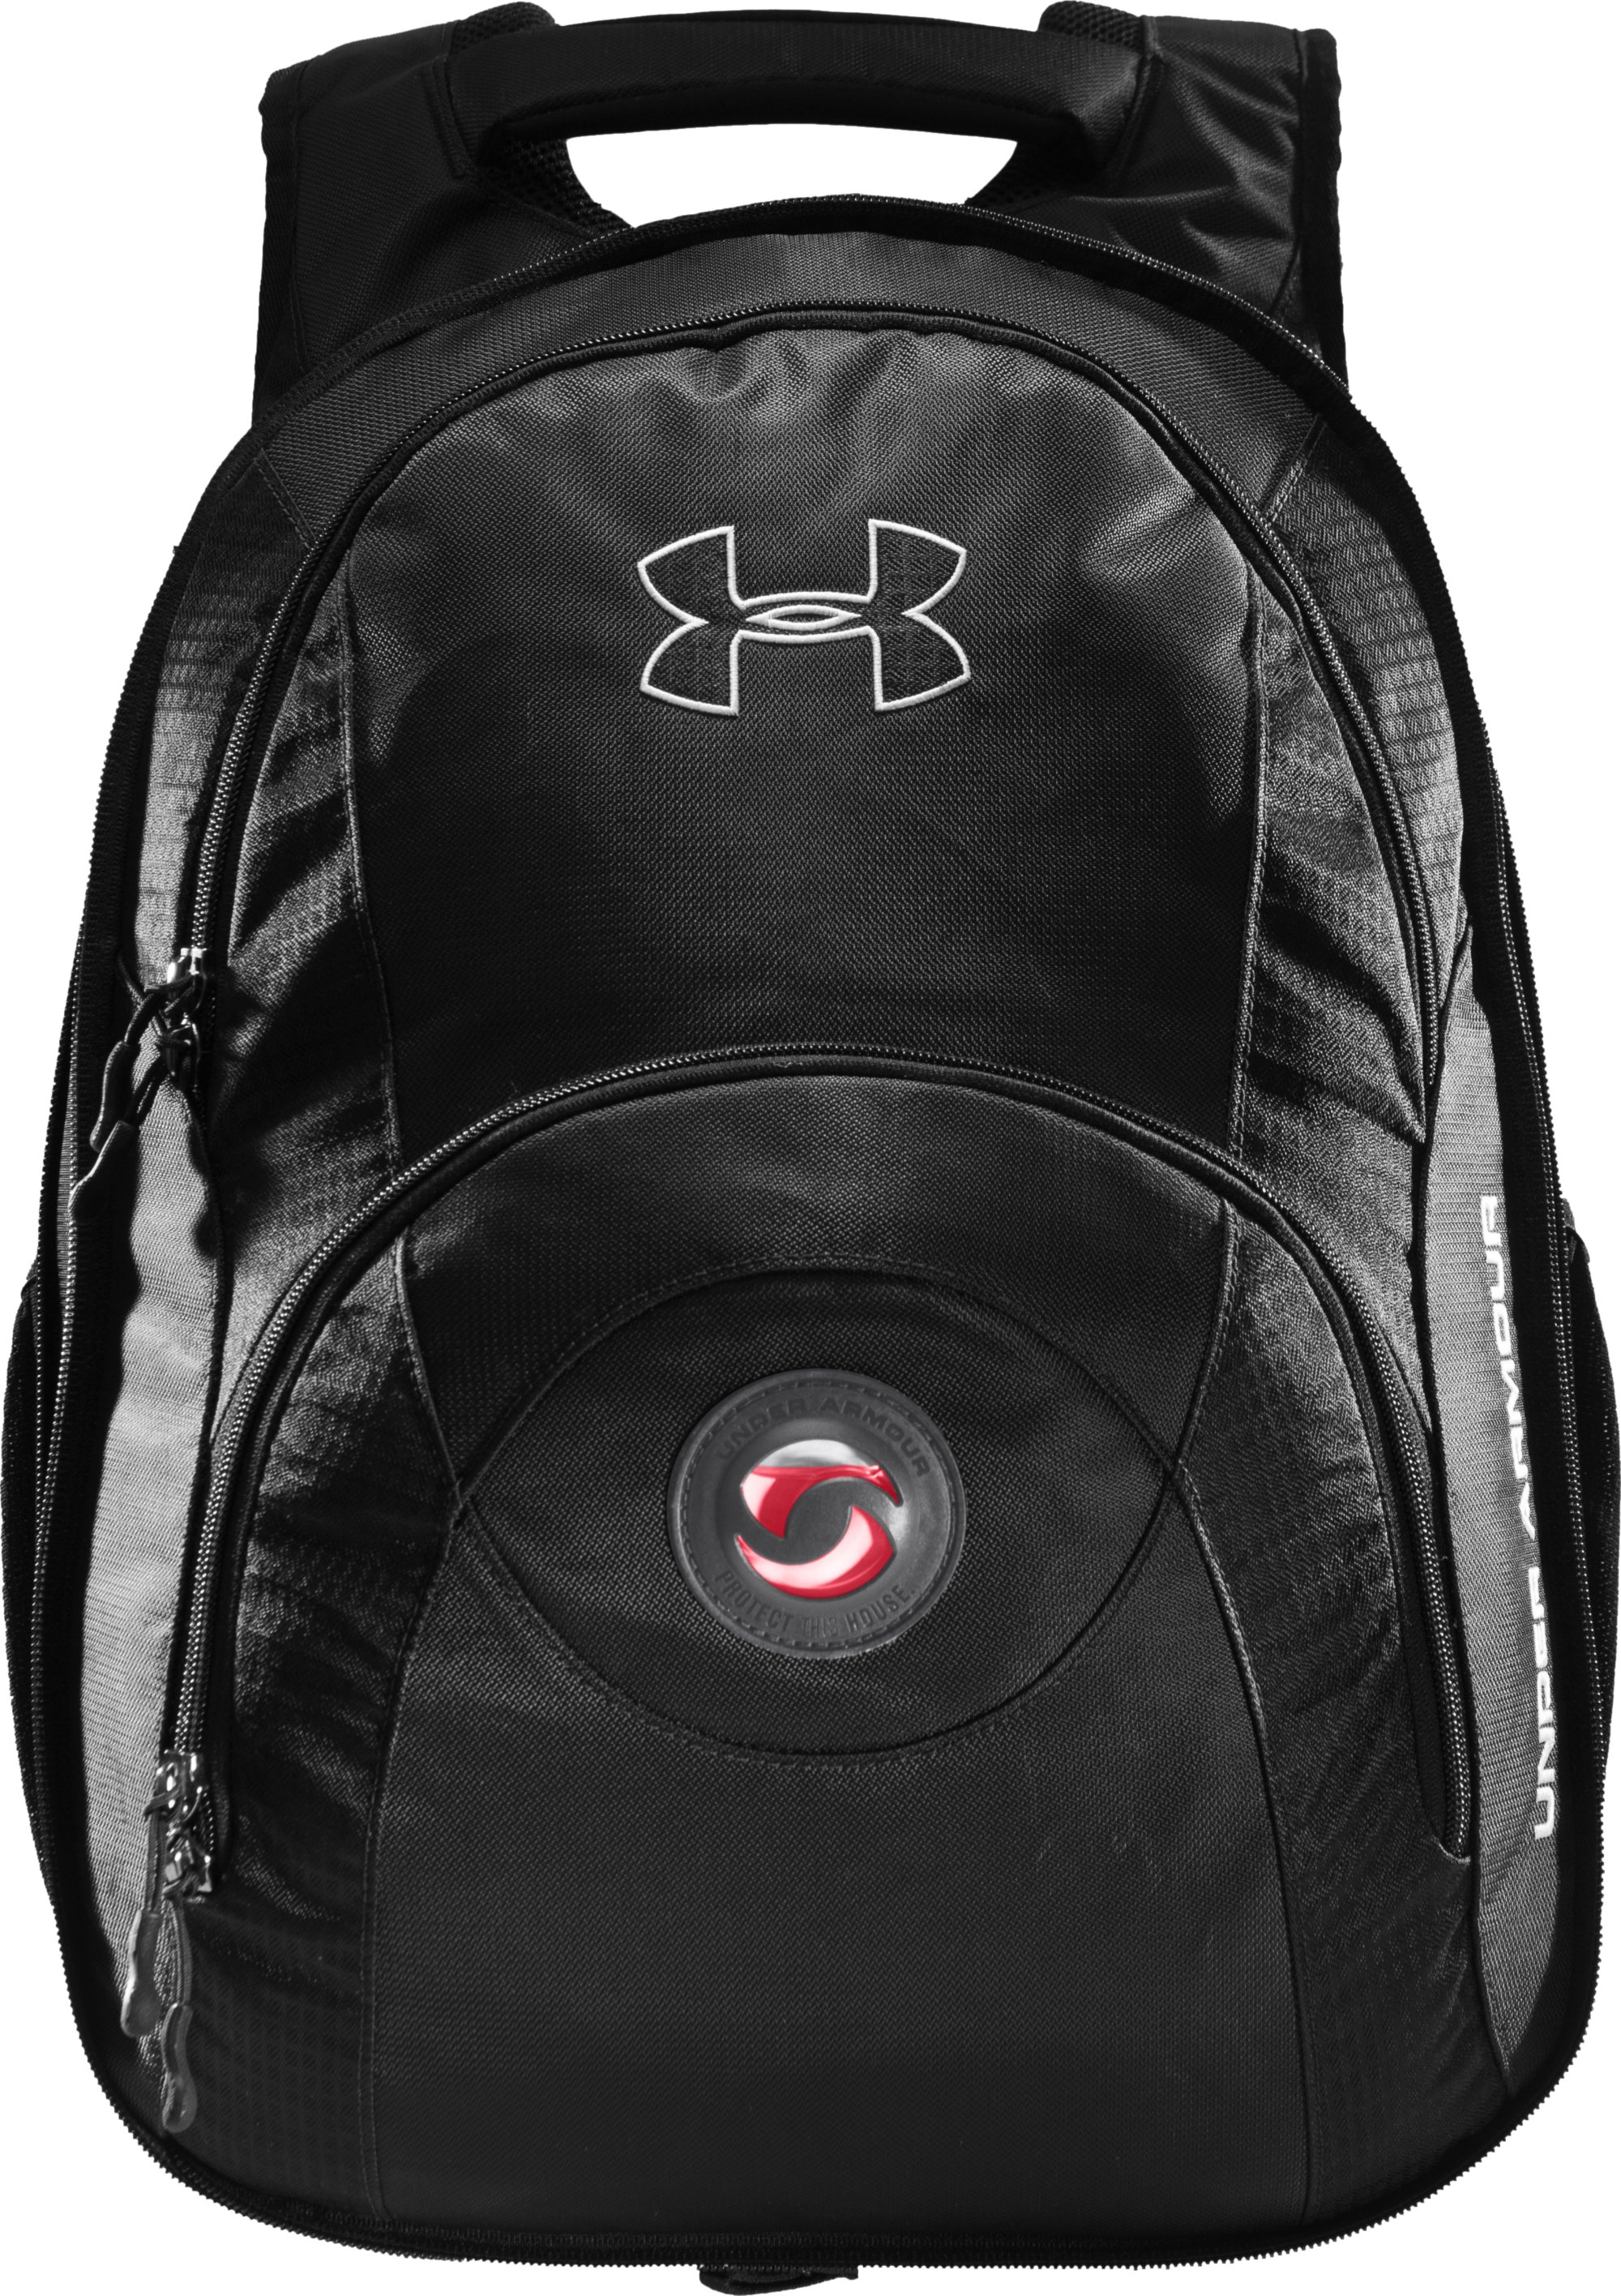 Best Backpack For High School - Crazy Backpacks